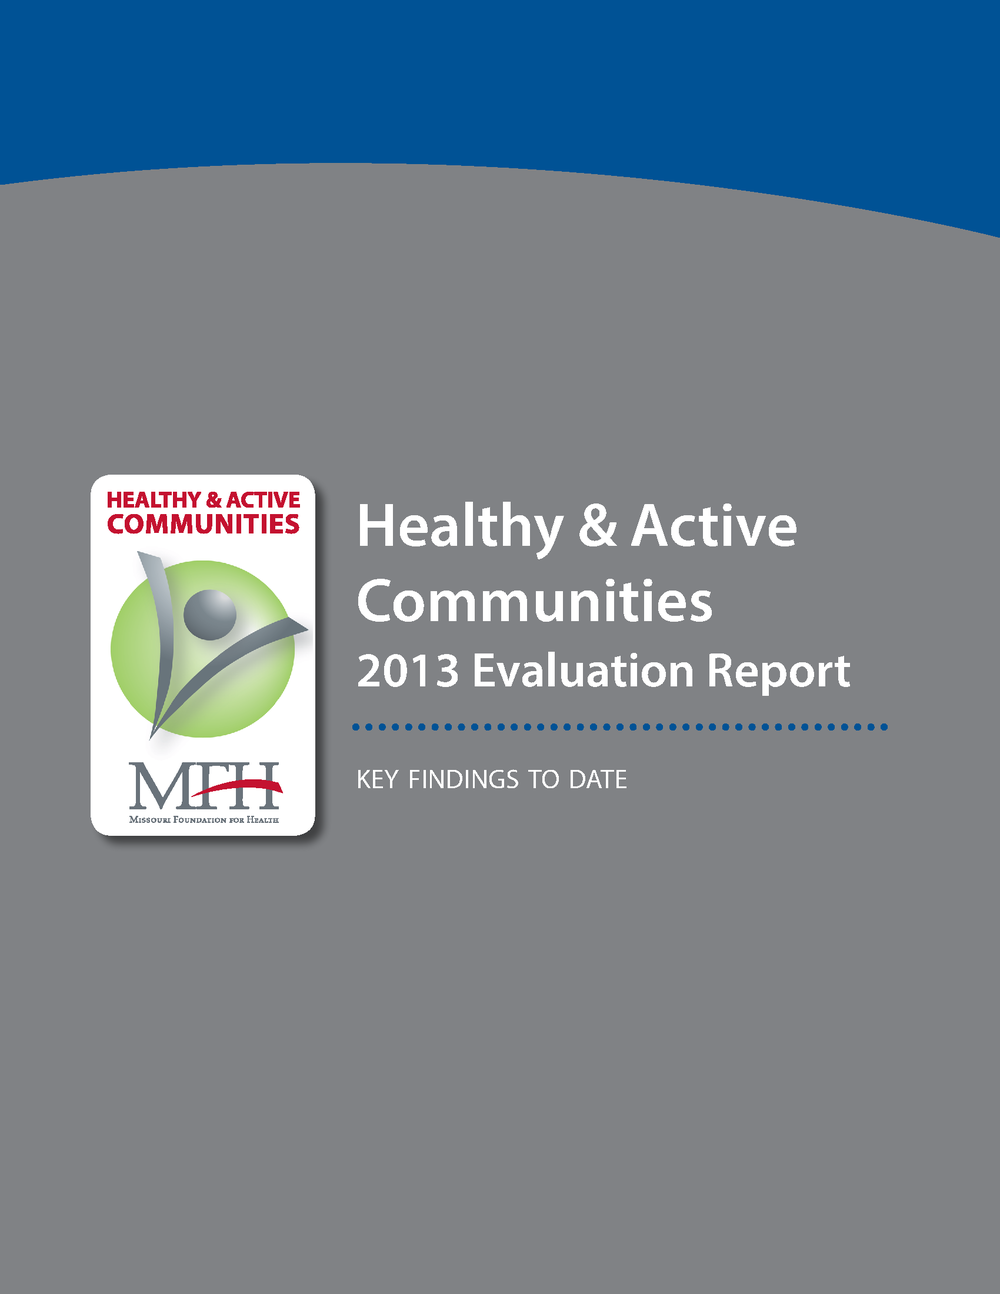 Healthy & Active Communities Evaluation Report 2013